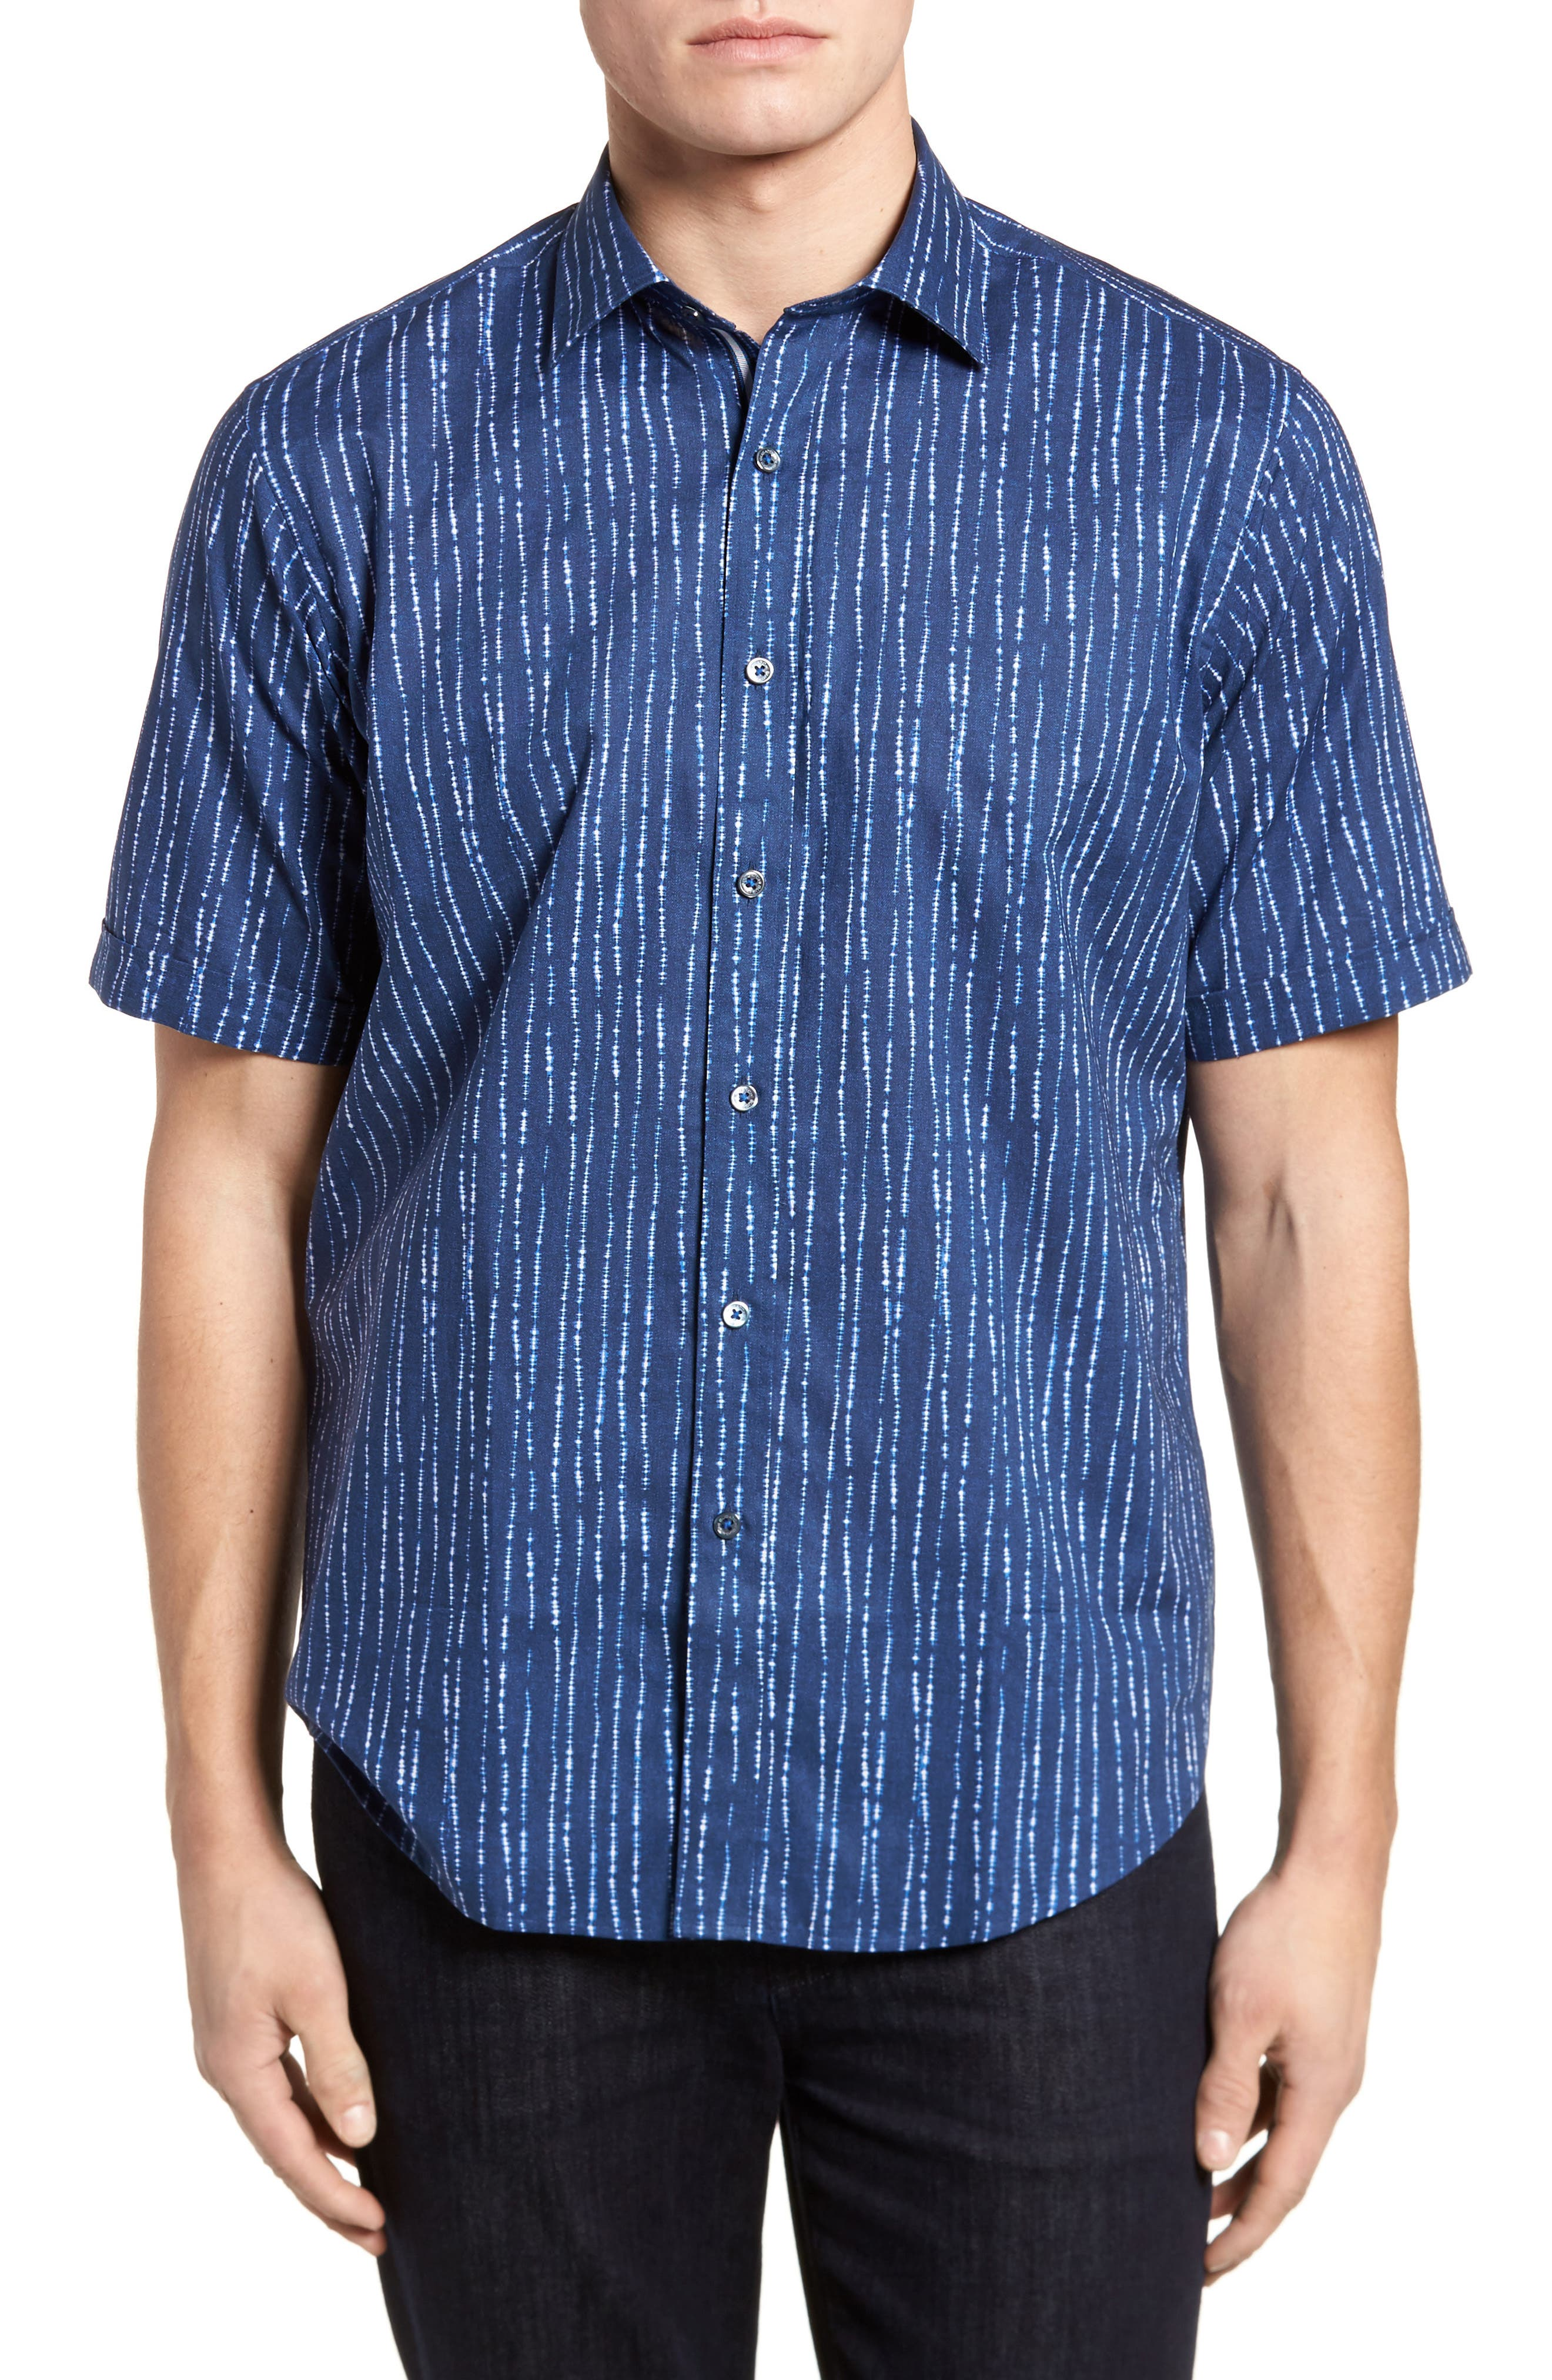 Freehand Tie Dye Lines Classic Fit Sport Shirt,                         Main,                         color, 100